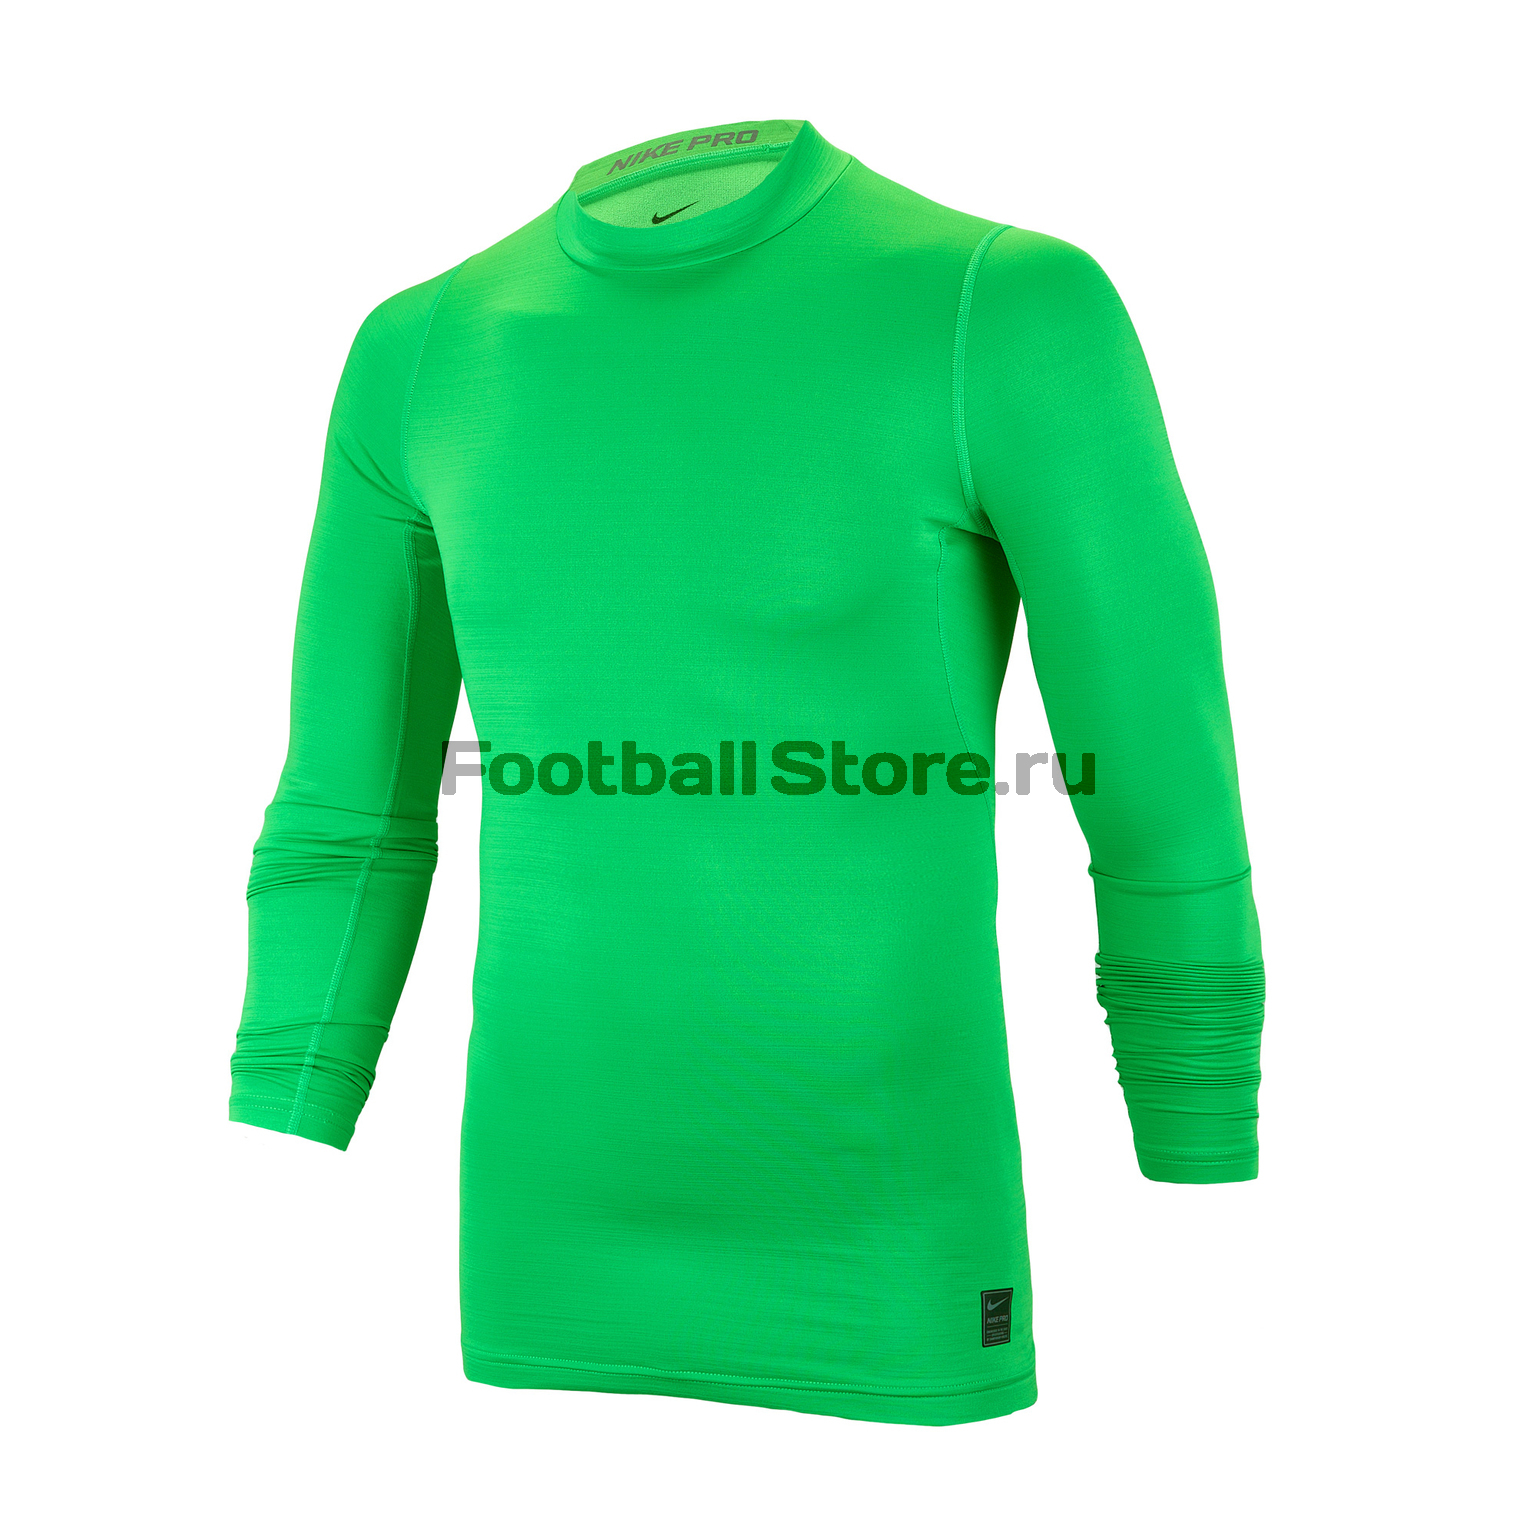 Белье футболка Nike GFA 927213-329 белье футболка nike dry park first layer av2609 329